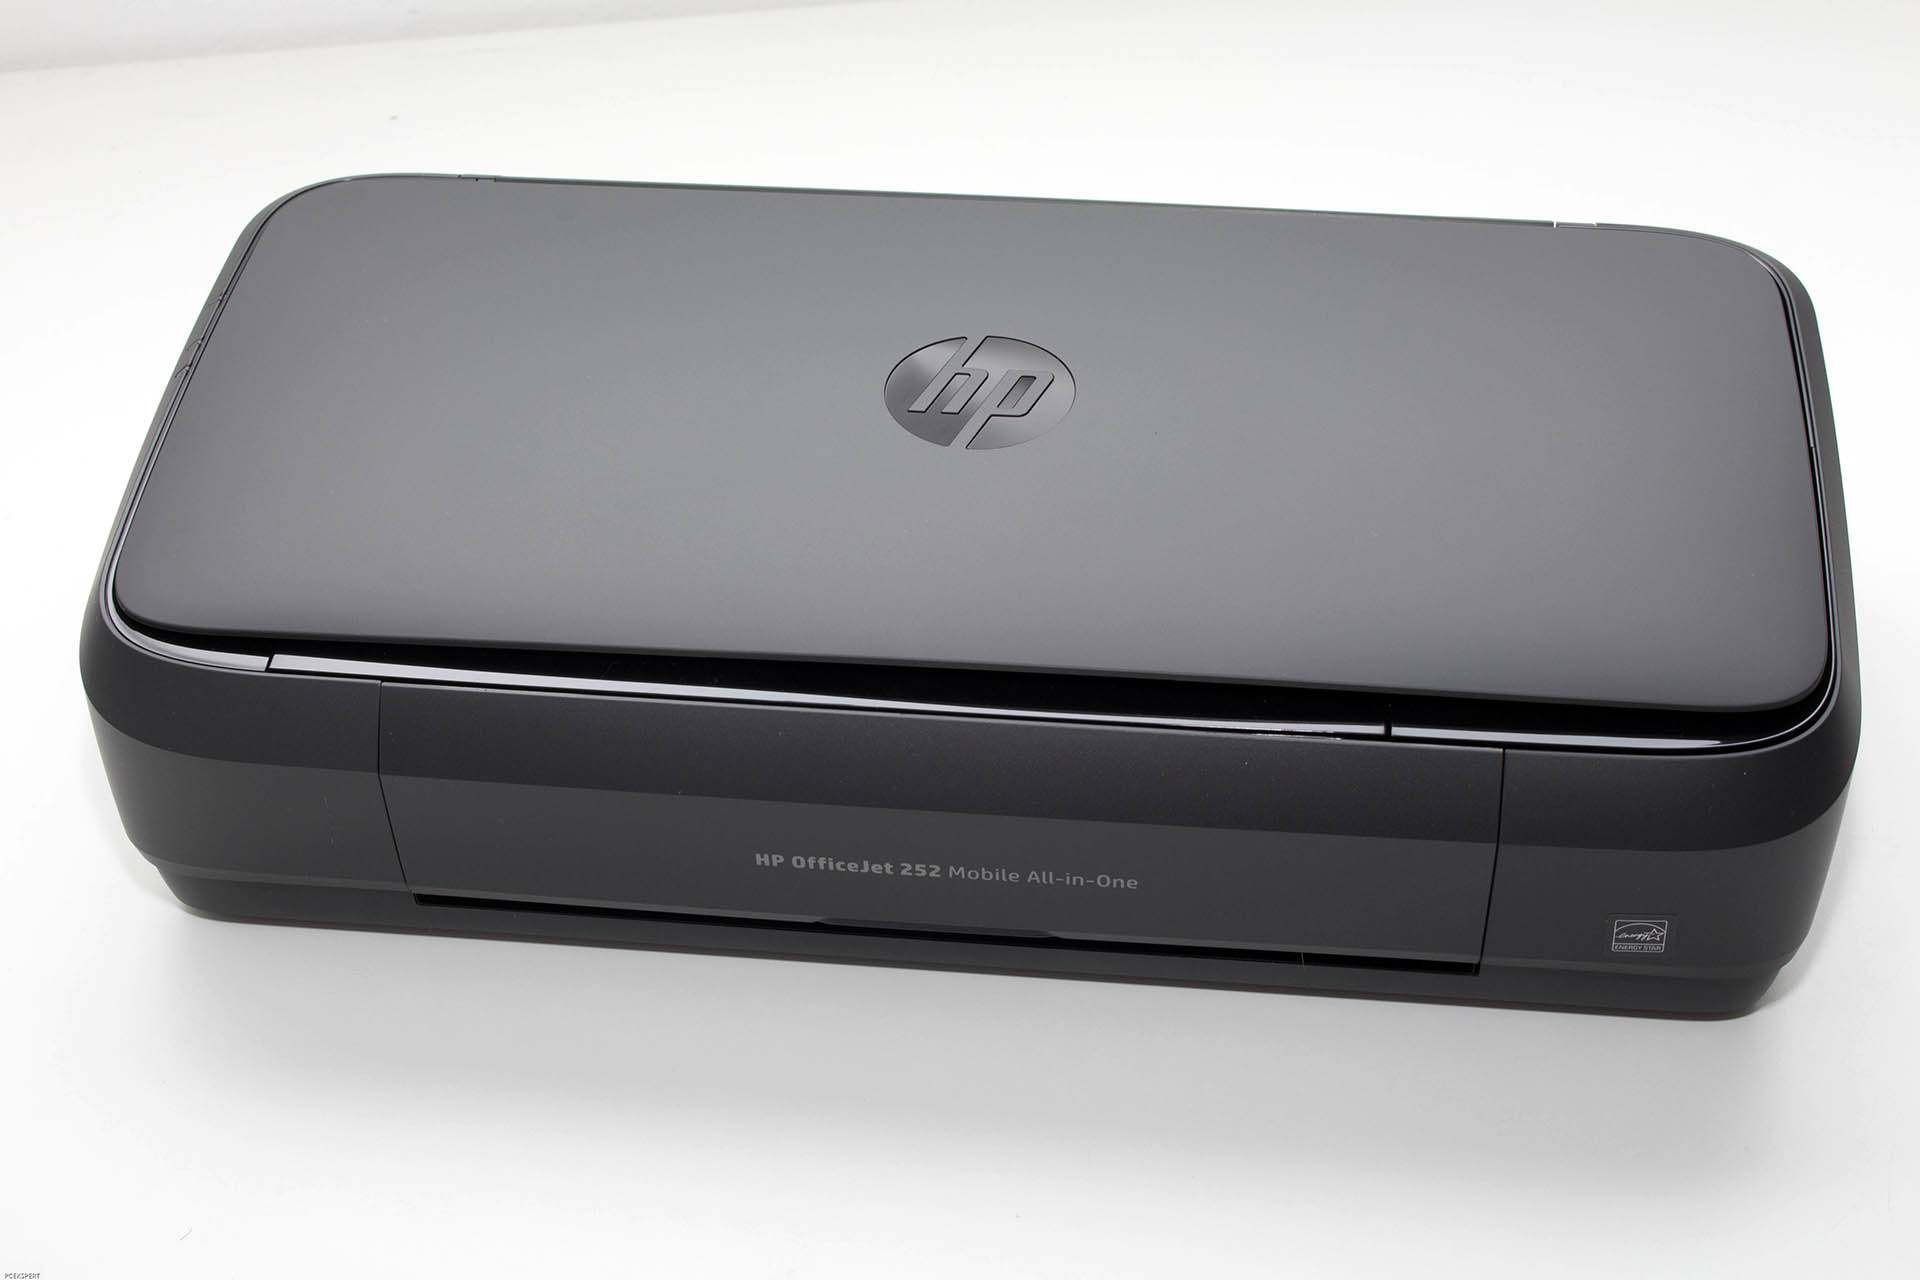 HP OfficeJet 252 Mobile All in one test